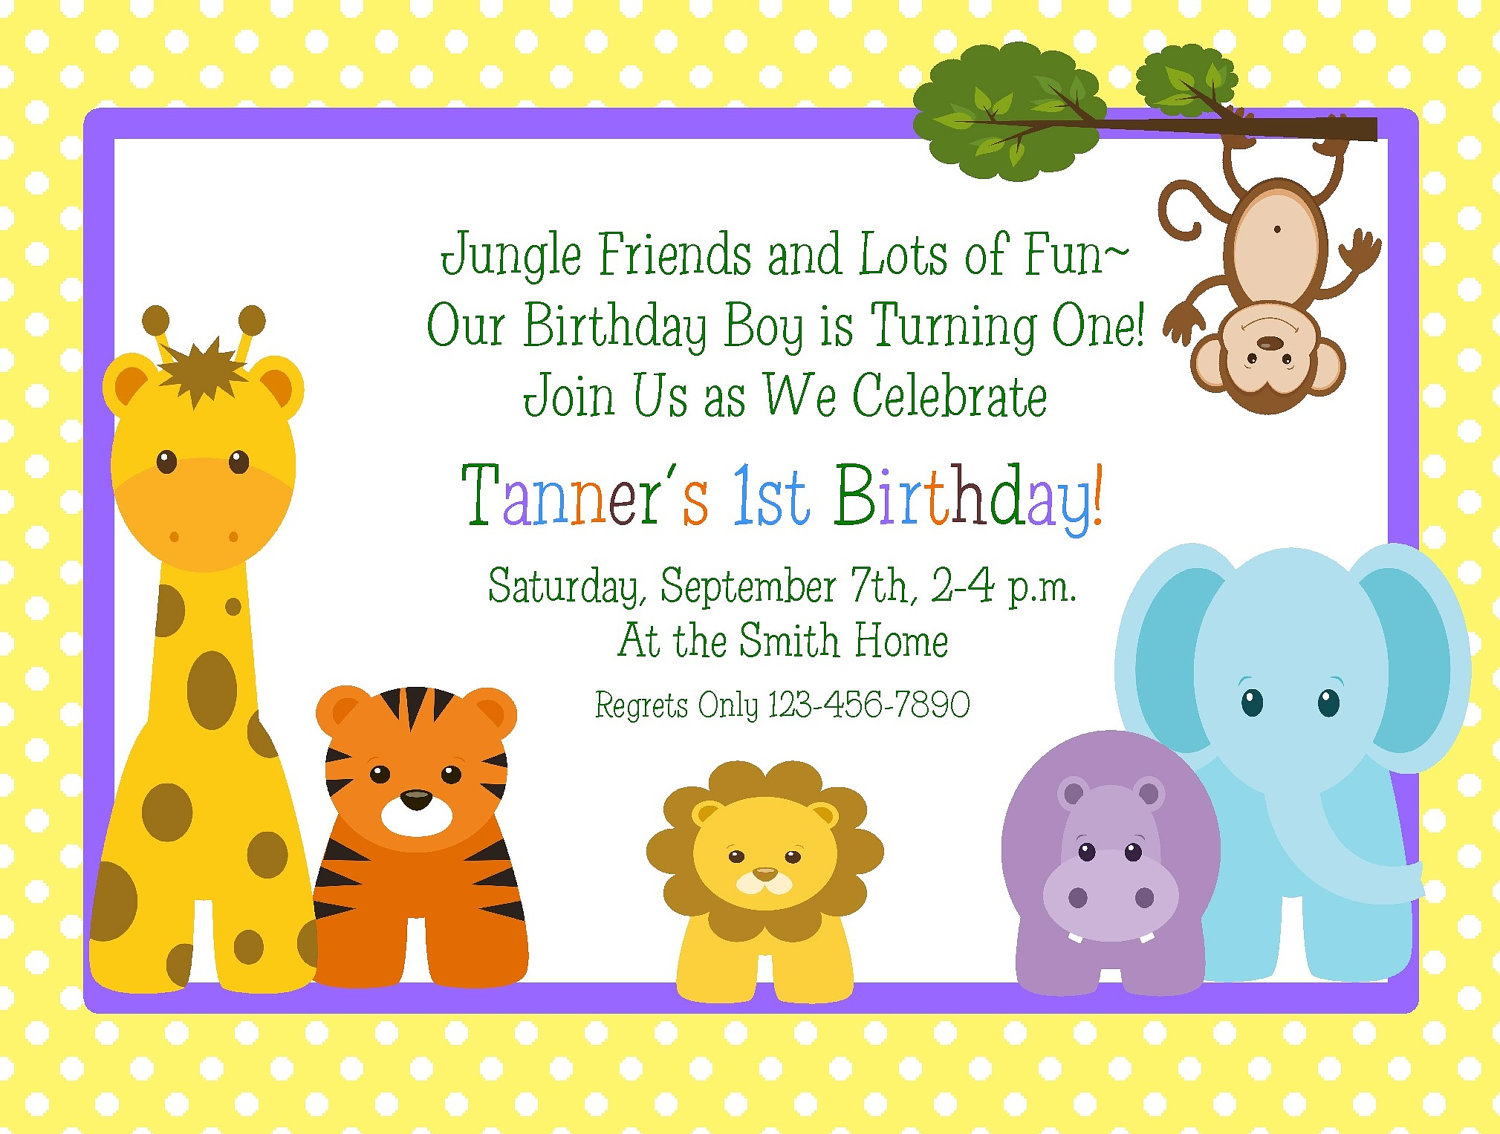 giraffe 1st birthday invitation ; birthday-jungle-animals-themed-1st-birthday-invitation-design-idea-with-giraffe-tiger-lion-elephant-and-monkey